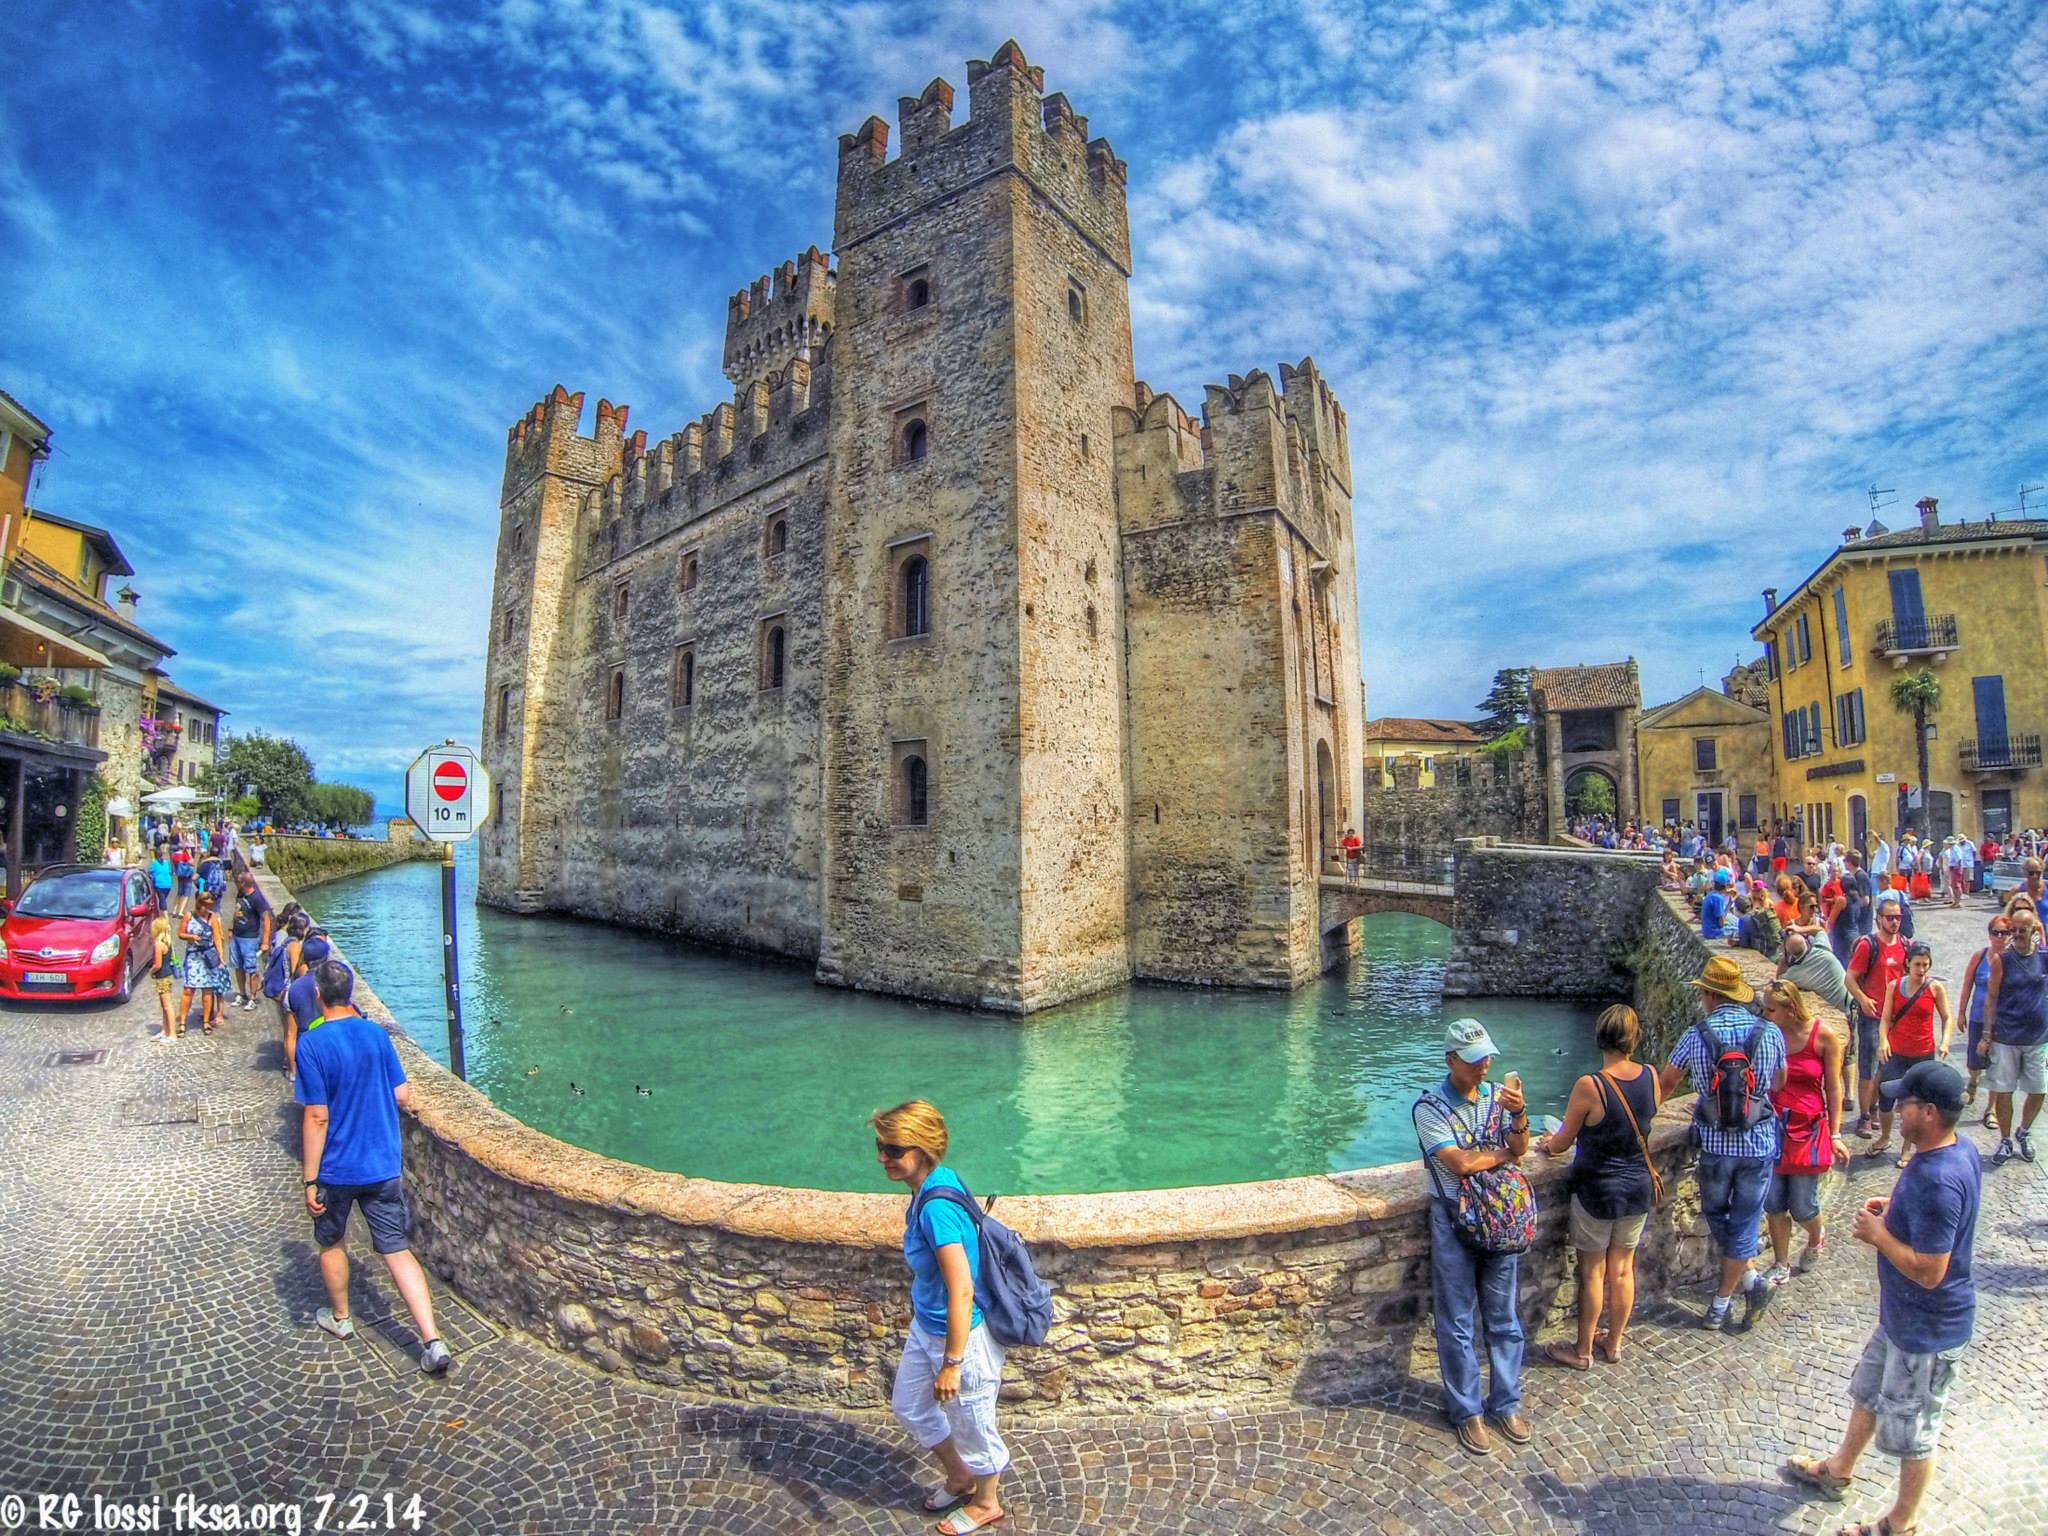 Rocca di Sirmione on the Sirmione peninsula at the south end of Lake Garda, Italy